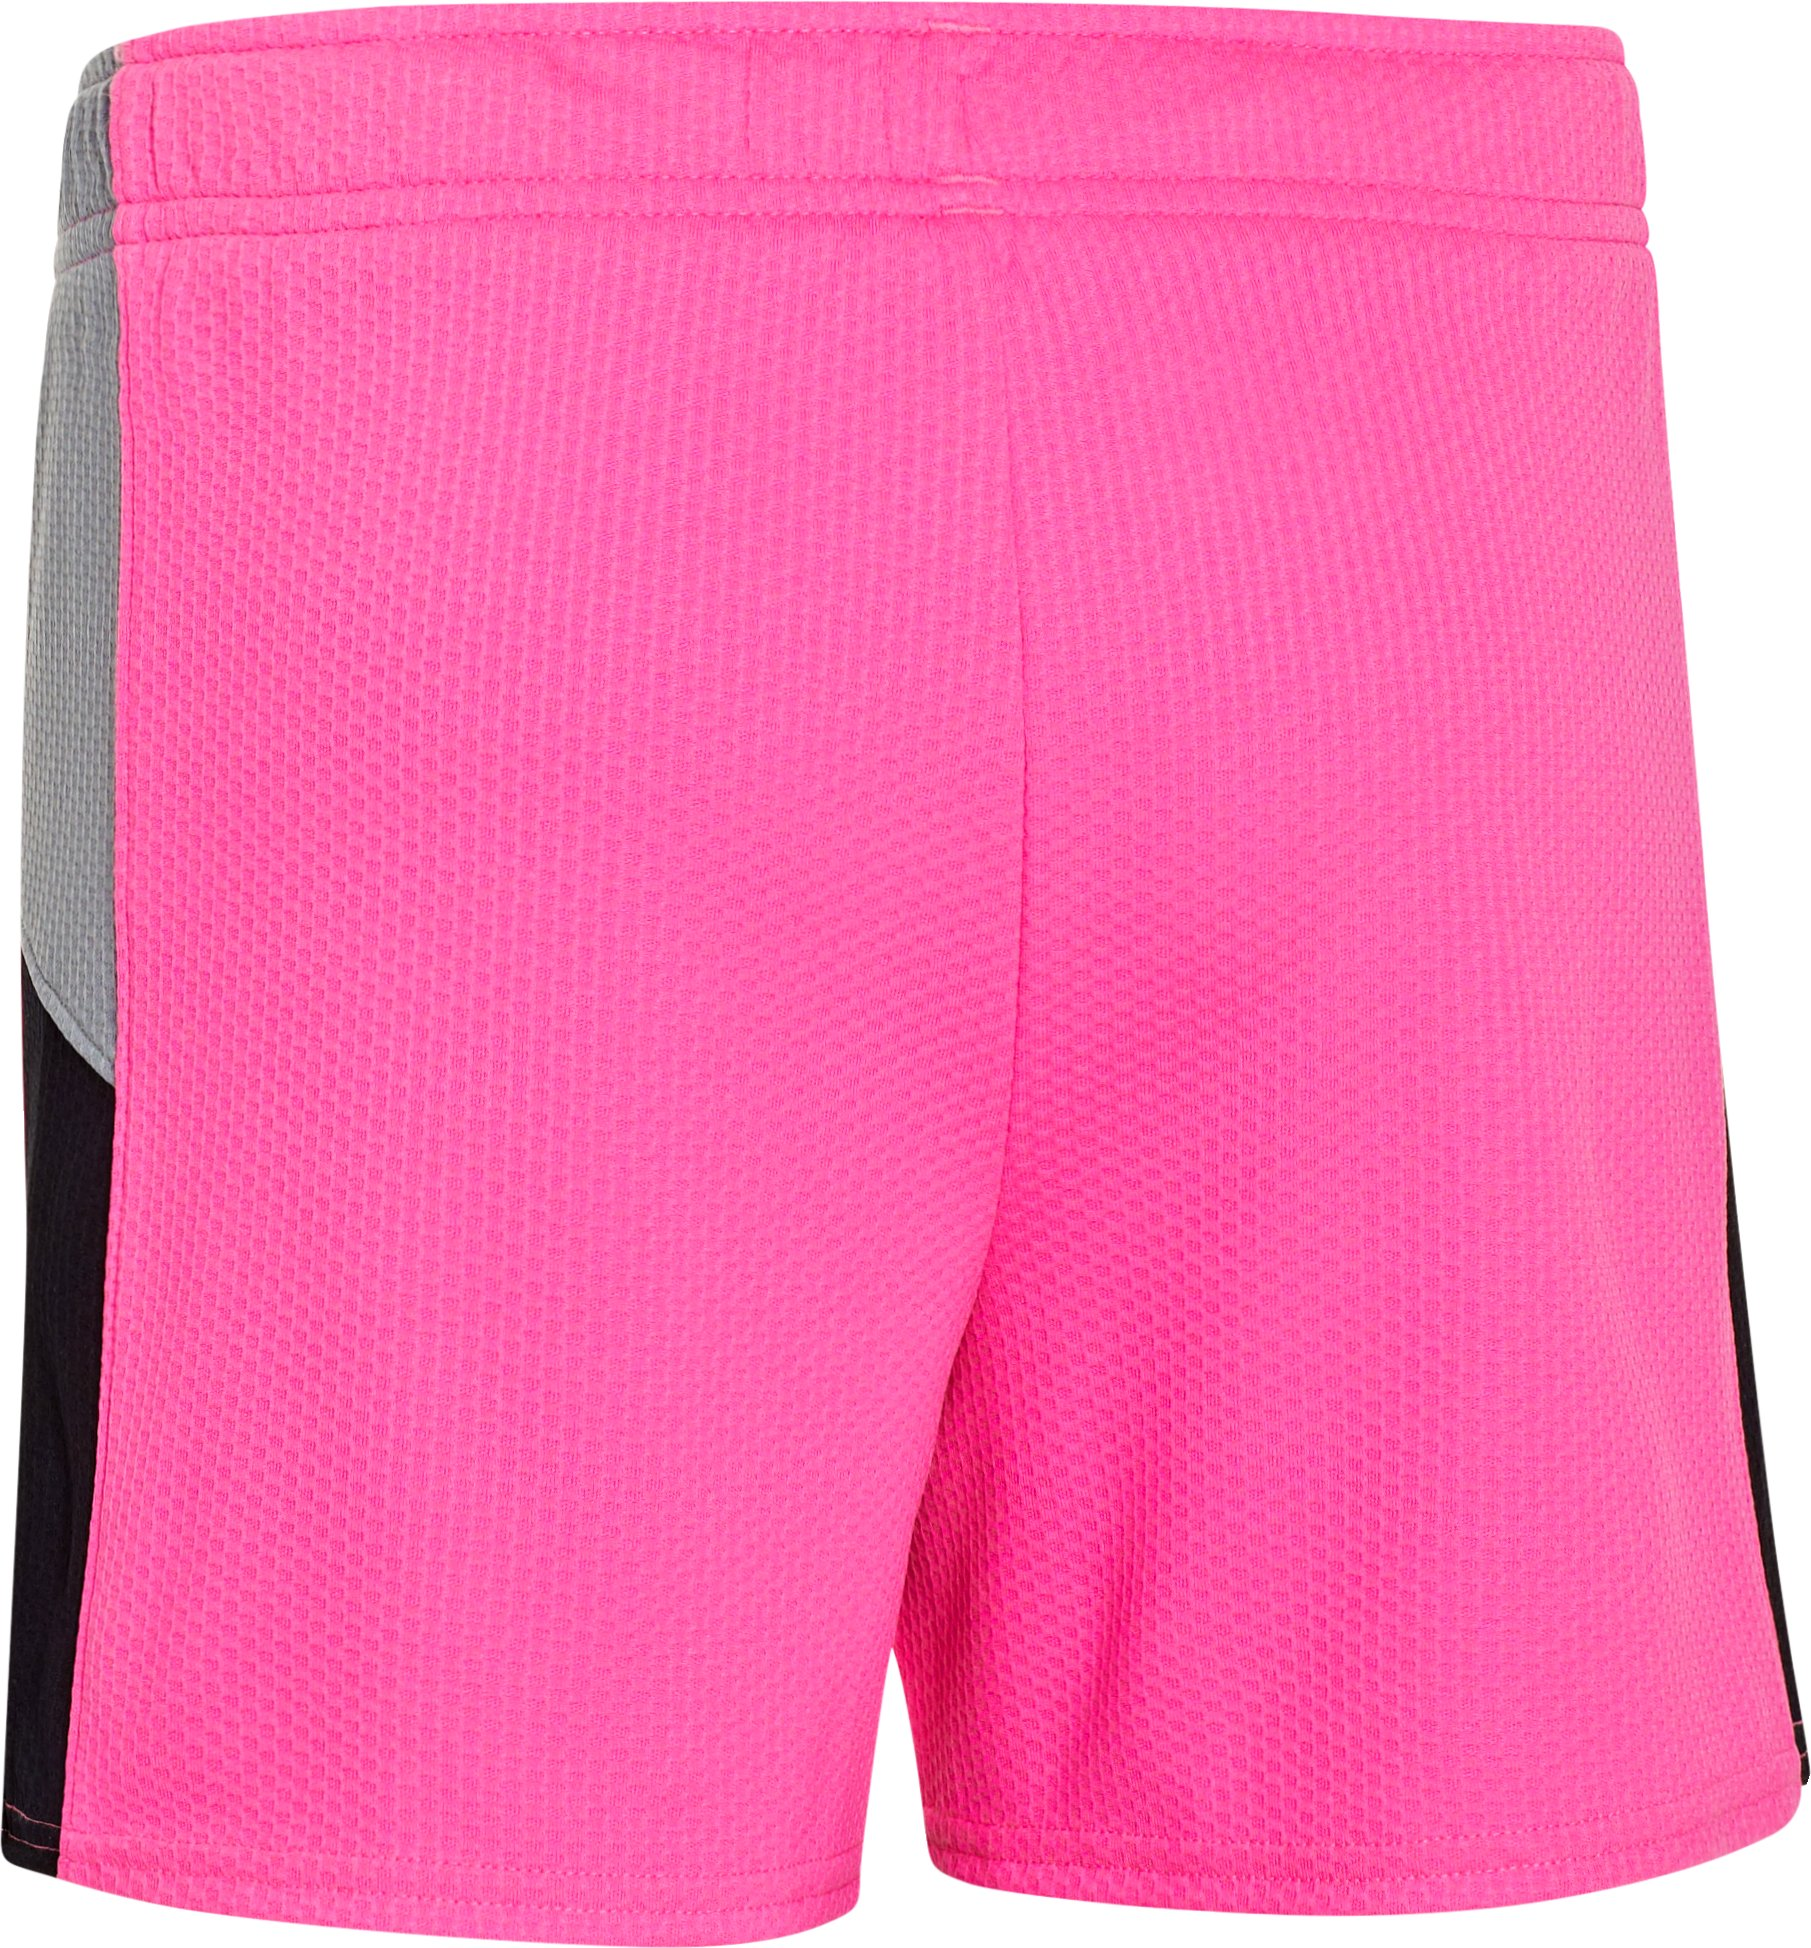 "Girls' UA Intensity 3"" Shorts, CHAOS, undefined"